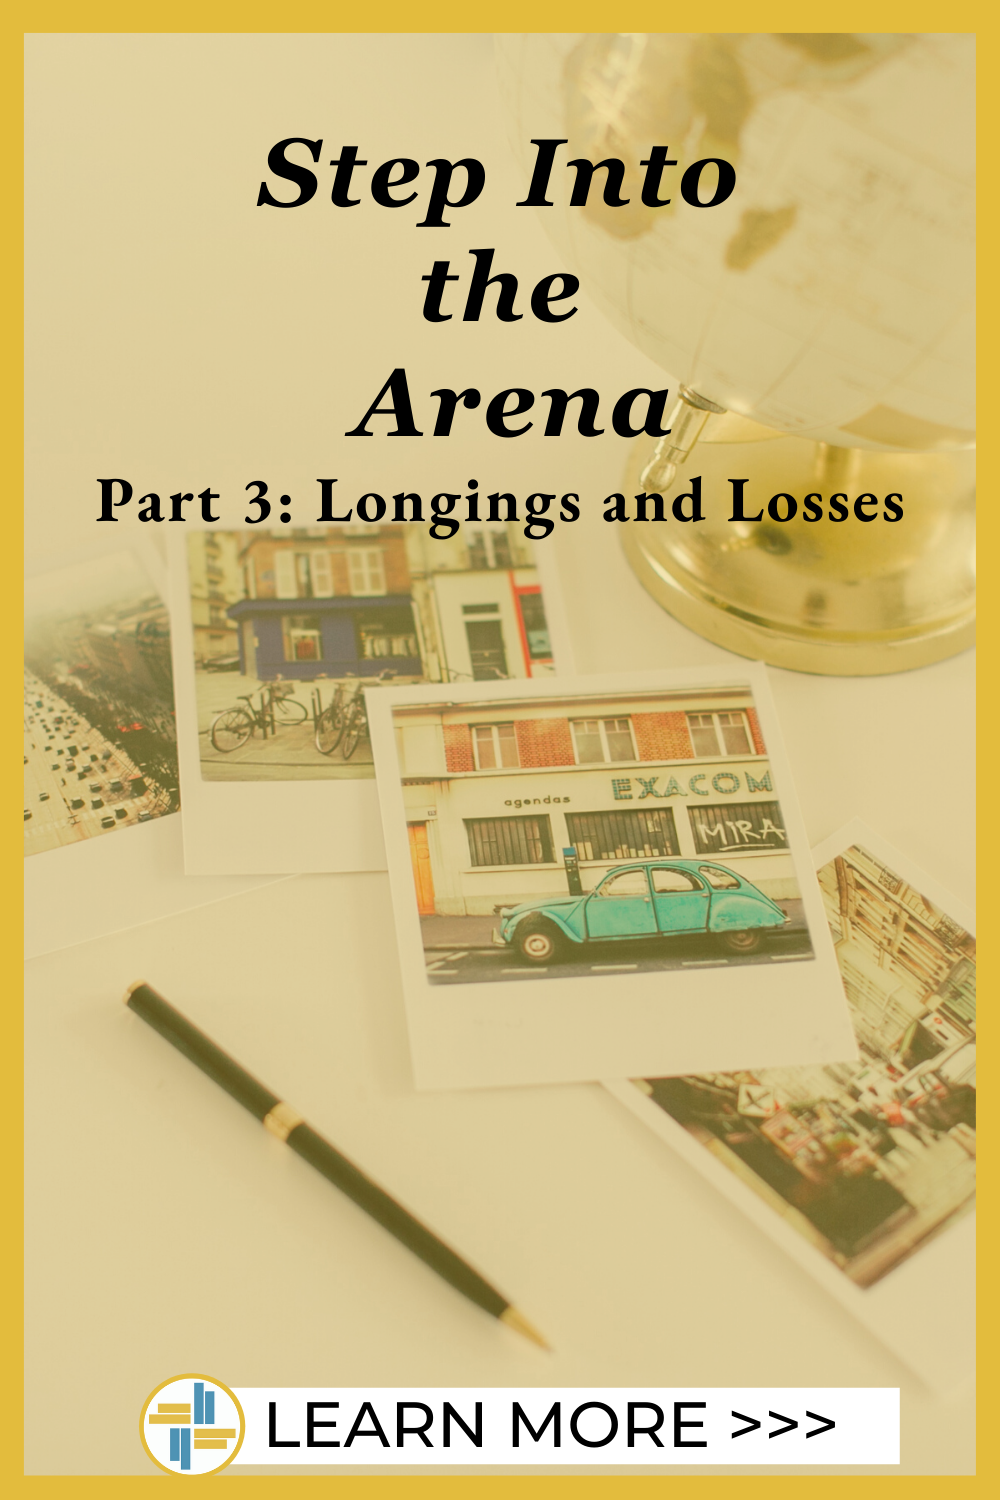 Step into the Arena - Part 3 - Longings and Losses